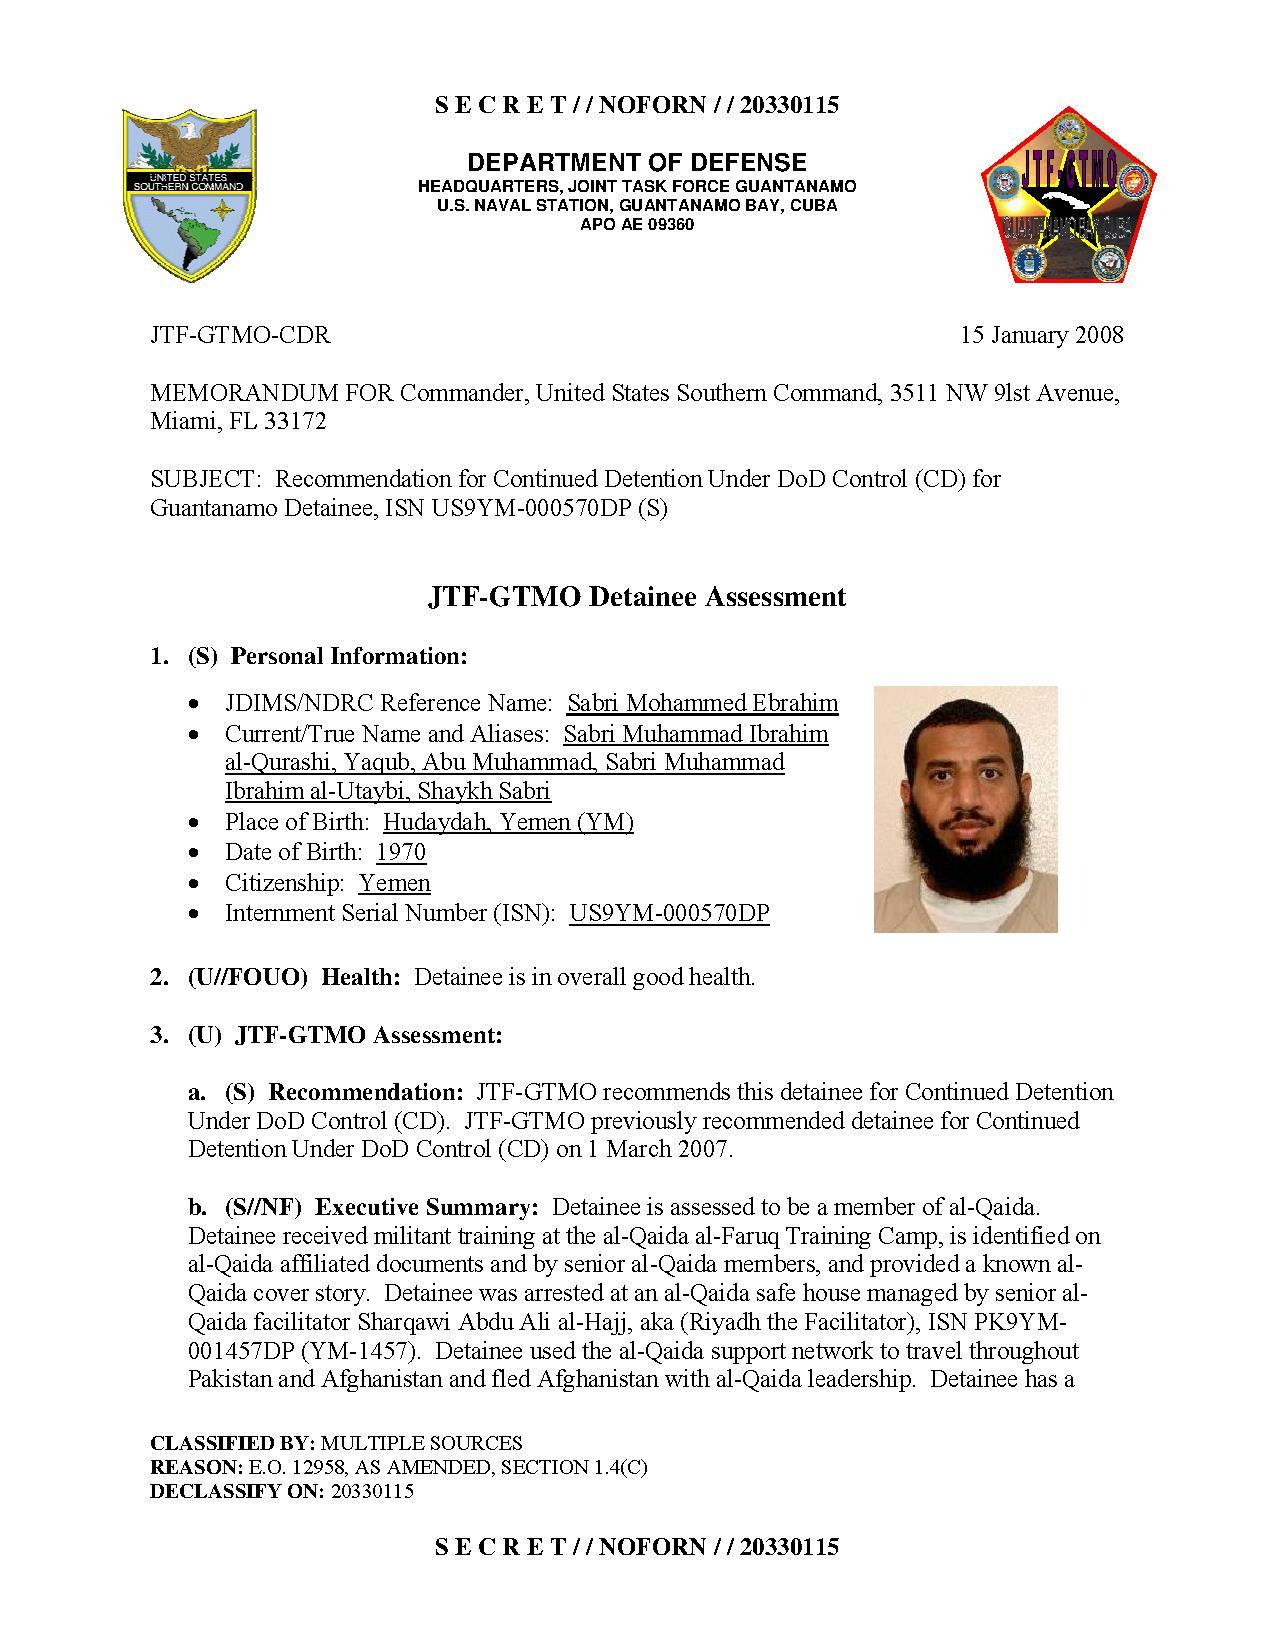 ISN 570's Guantanamo detainee assessment.pdf